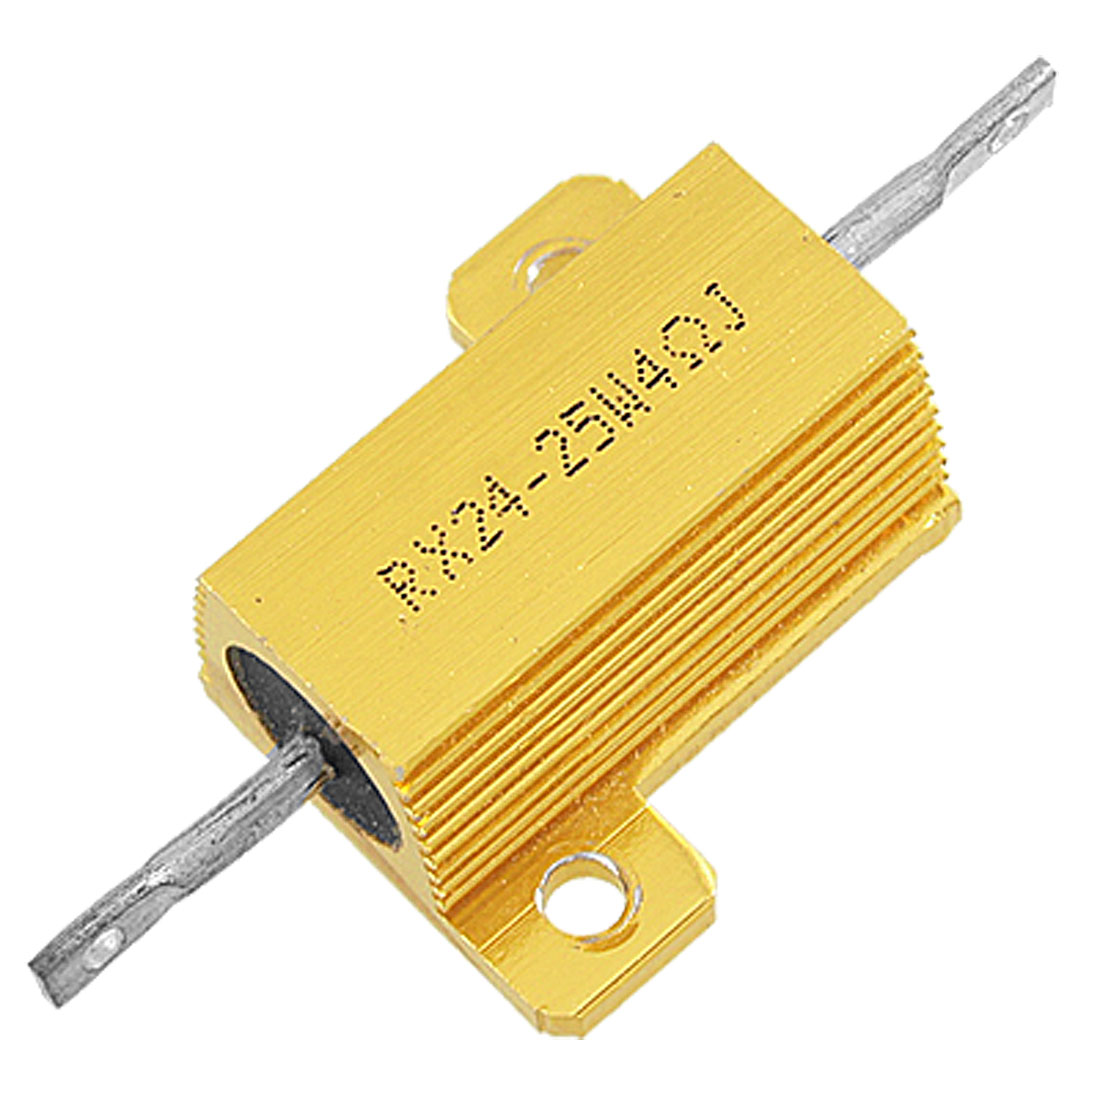 25 Watt Power Chasis Mounted Aluminum Housed Wirewound Resistor 4 Ohm